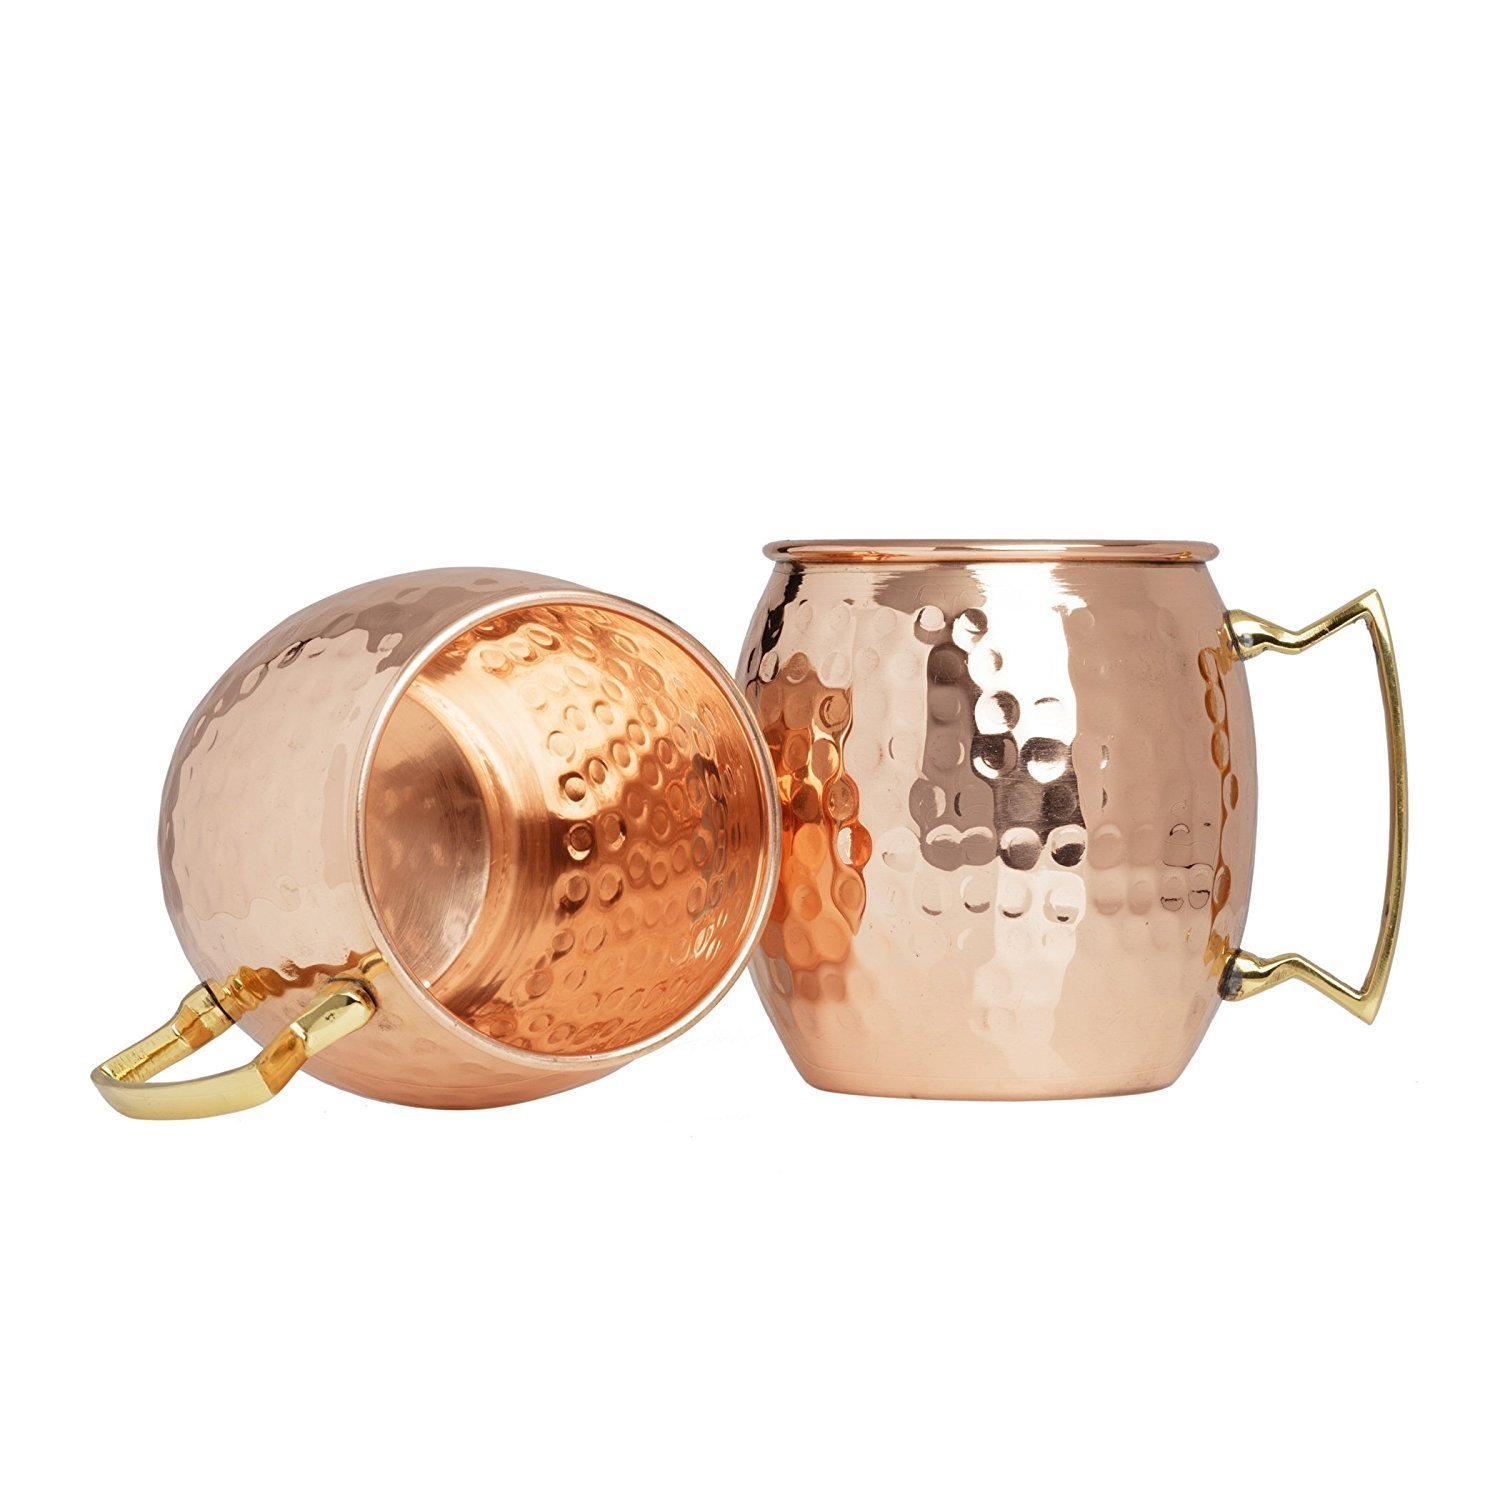 Set of 40 100% Pure Copper Moscow Mule Mugs By Advanced Mixology (16 oz each) with 40 Artisan Hand Crafted Wooden Coasters - Barrel With Brass Handle by Advanced Mixology (Image #2)